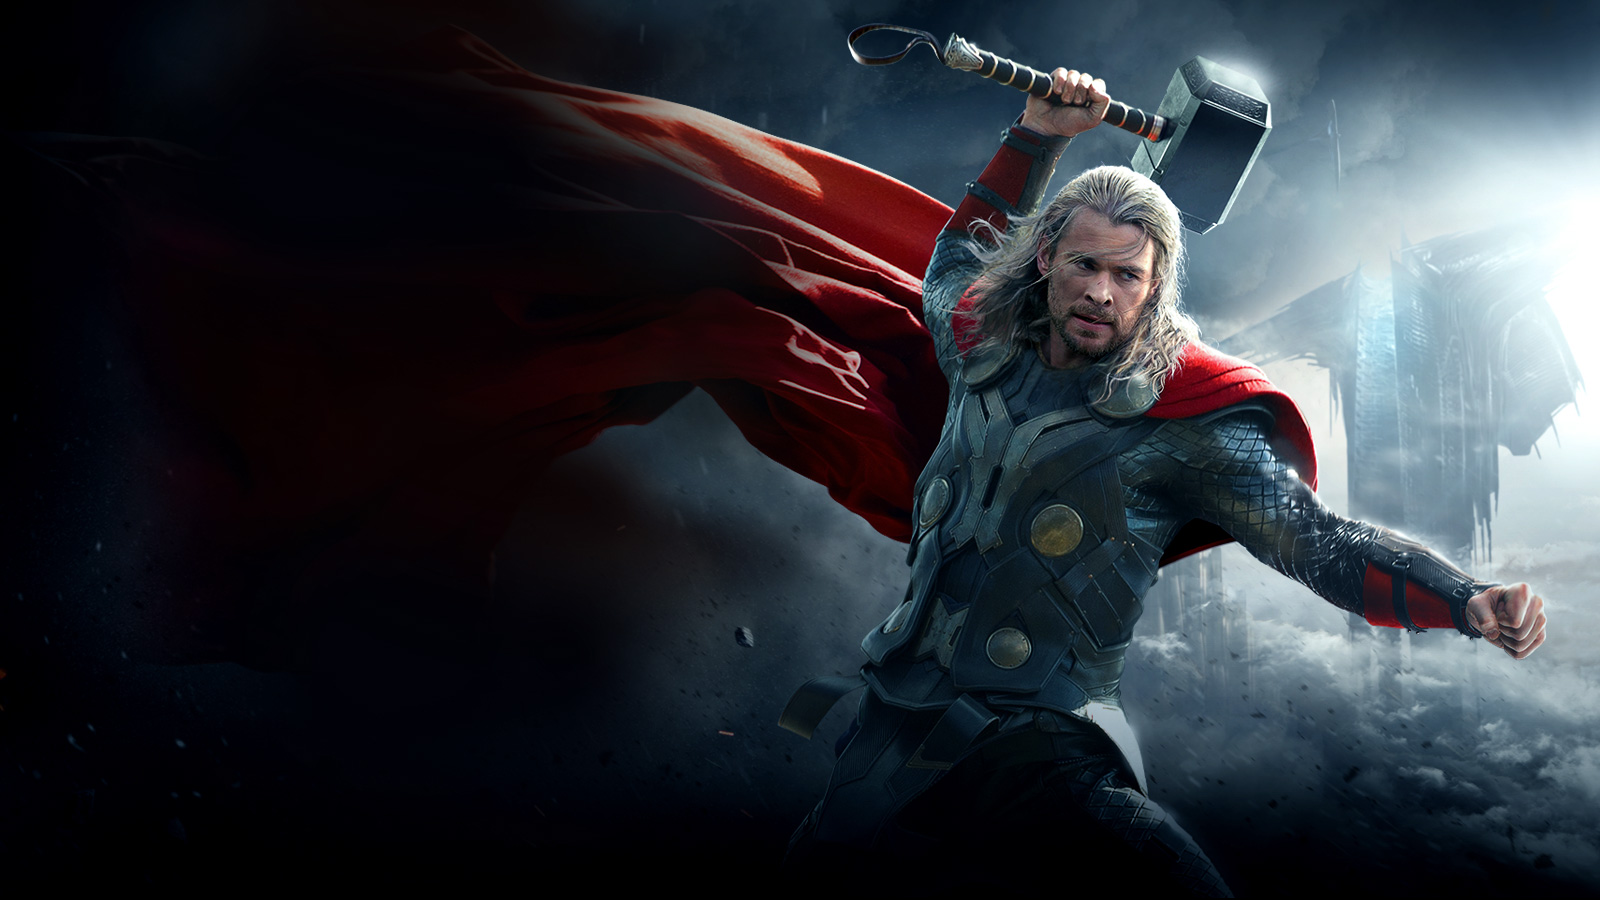 HQ Thor Wallpapers | File 264.95Kb